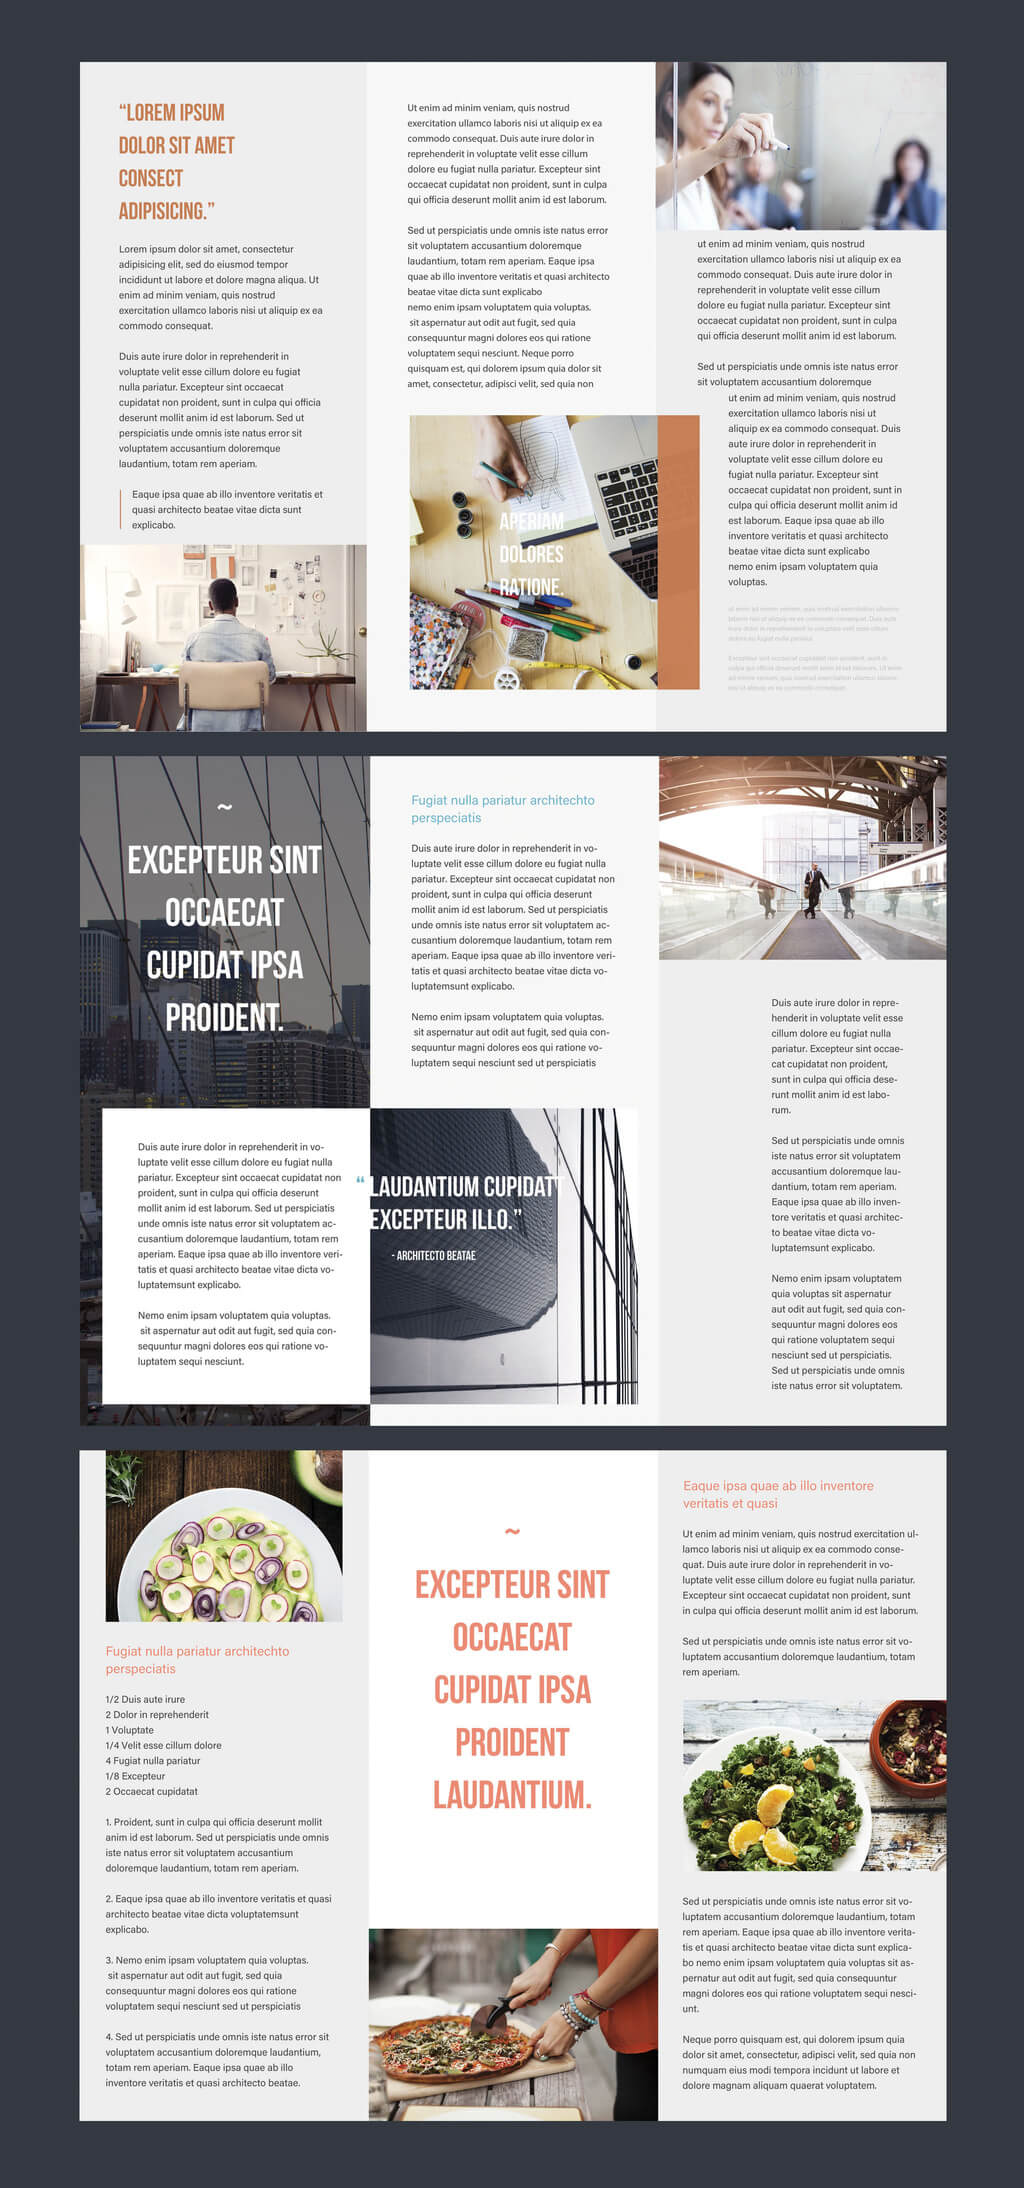 Professional Brochure Templates | Adobe Blog for Brochure Template Illustrator Free Download